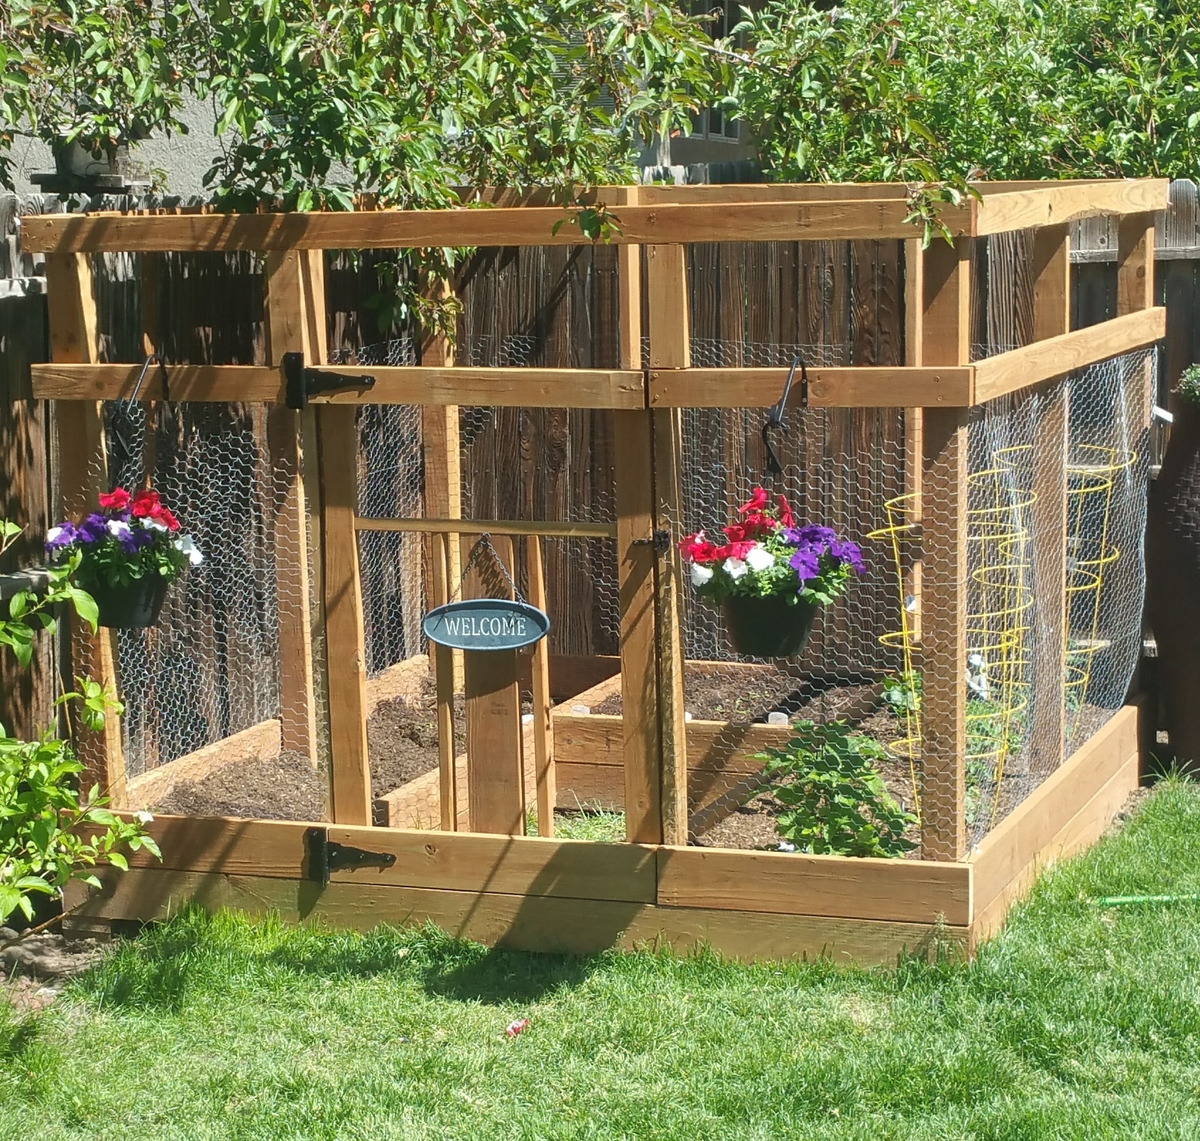 Garden Enclosure With Custom Gate - DIY Projects